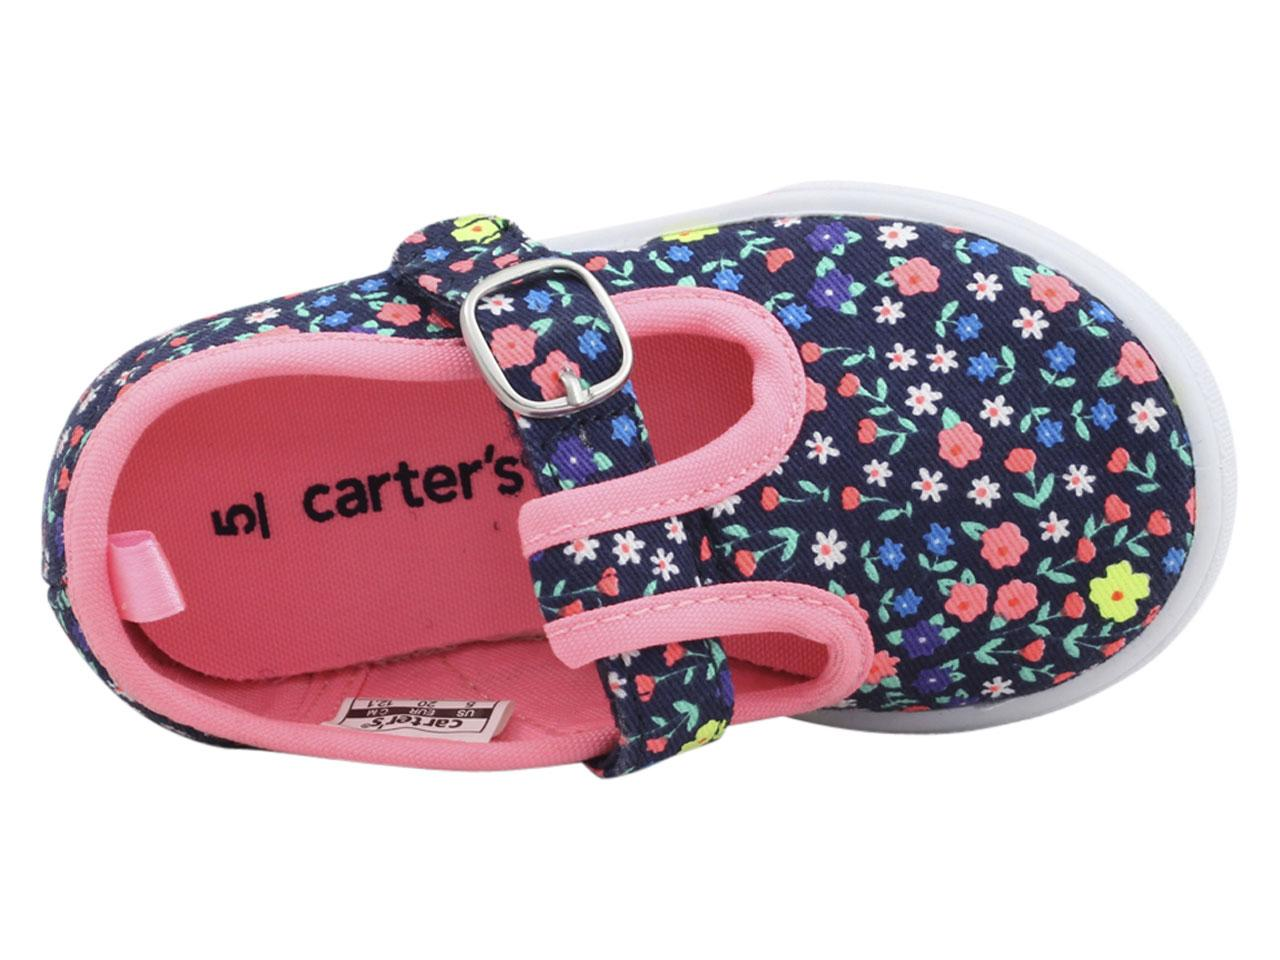 b8589fedd6c Carter s Toddler Little Girl s Lorna-2 T-Strap Loafers Shoes by Carter s. 12 34567